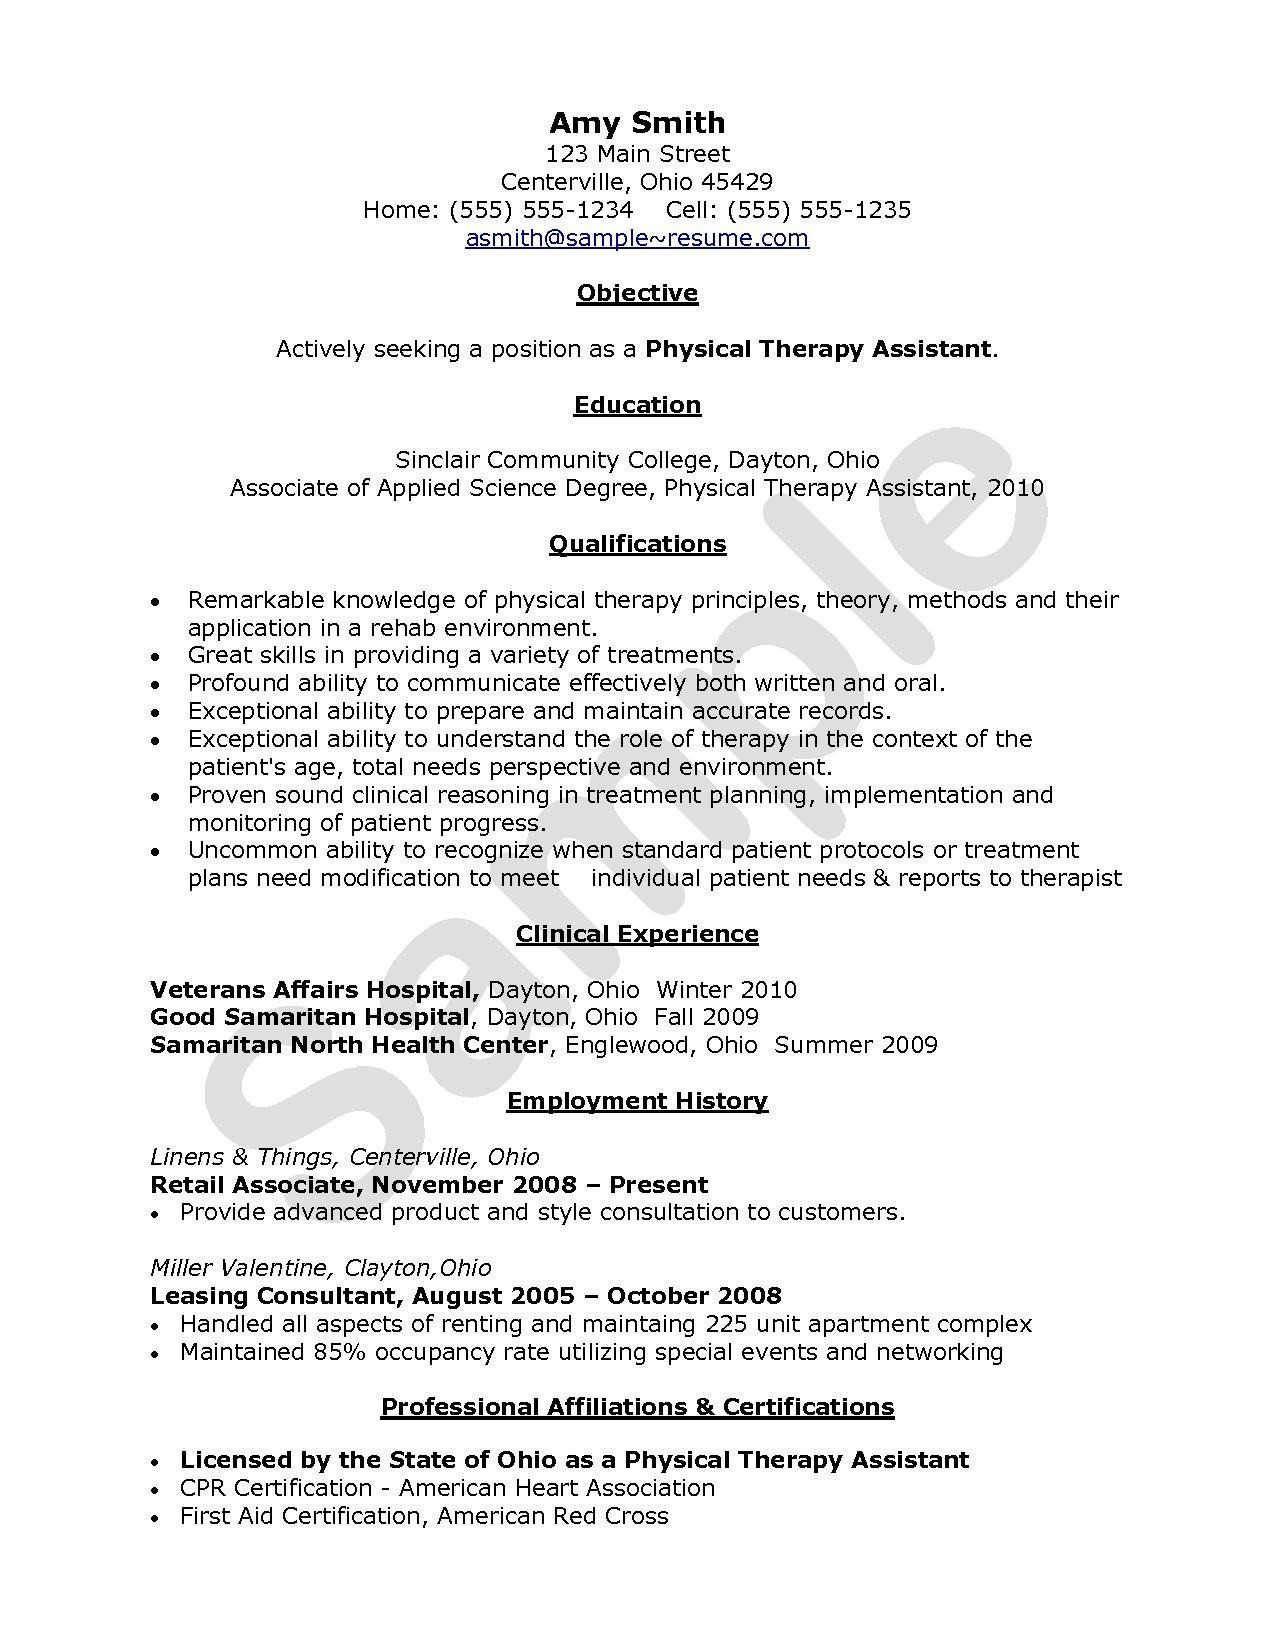 Cpr Certification On Resume Unique 12 13 Cpr Certification On Resume Example Physical Therapy Assistant Resume Examples Physical Therapist Assistant